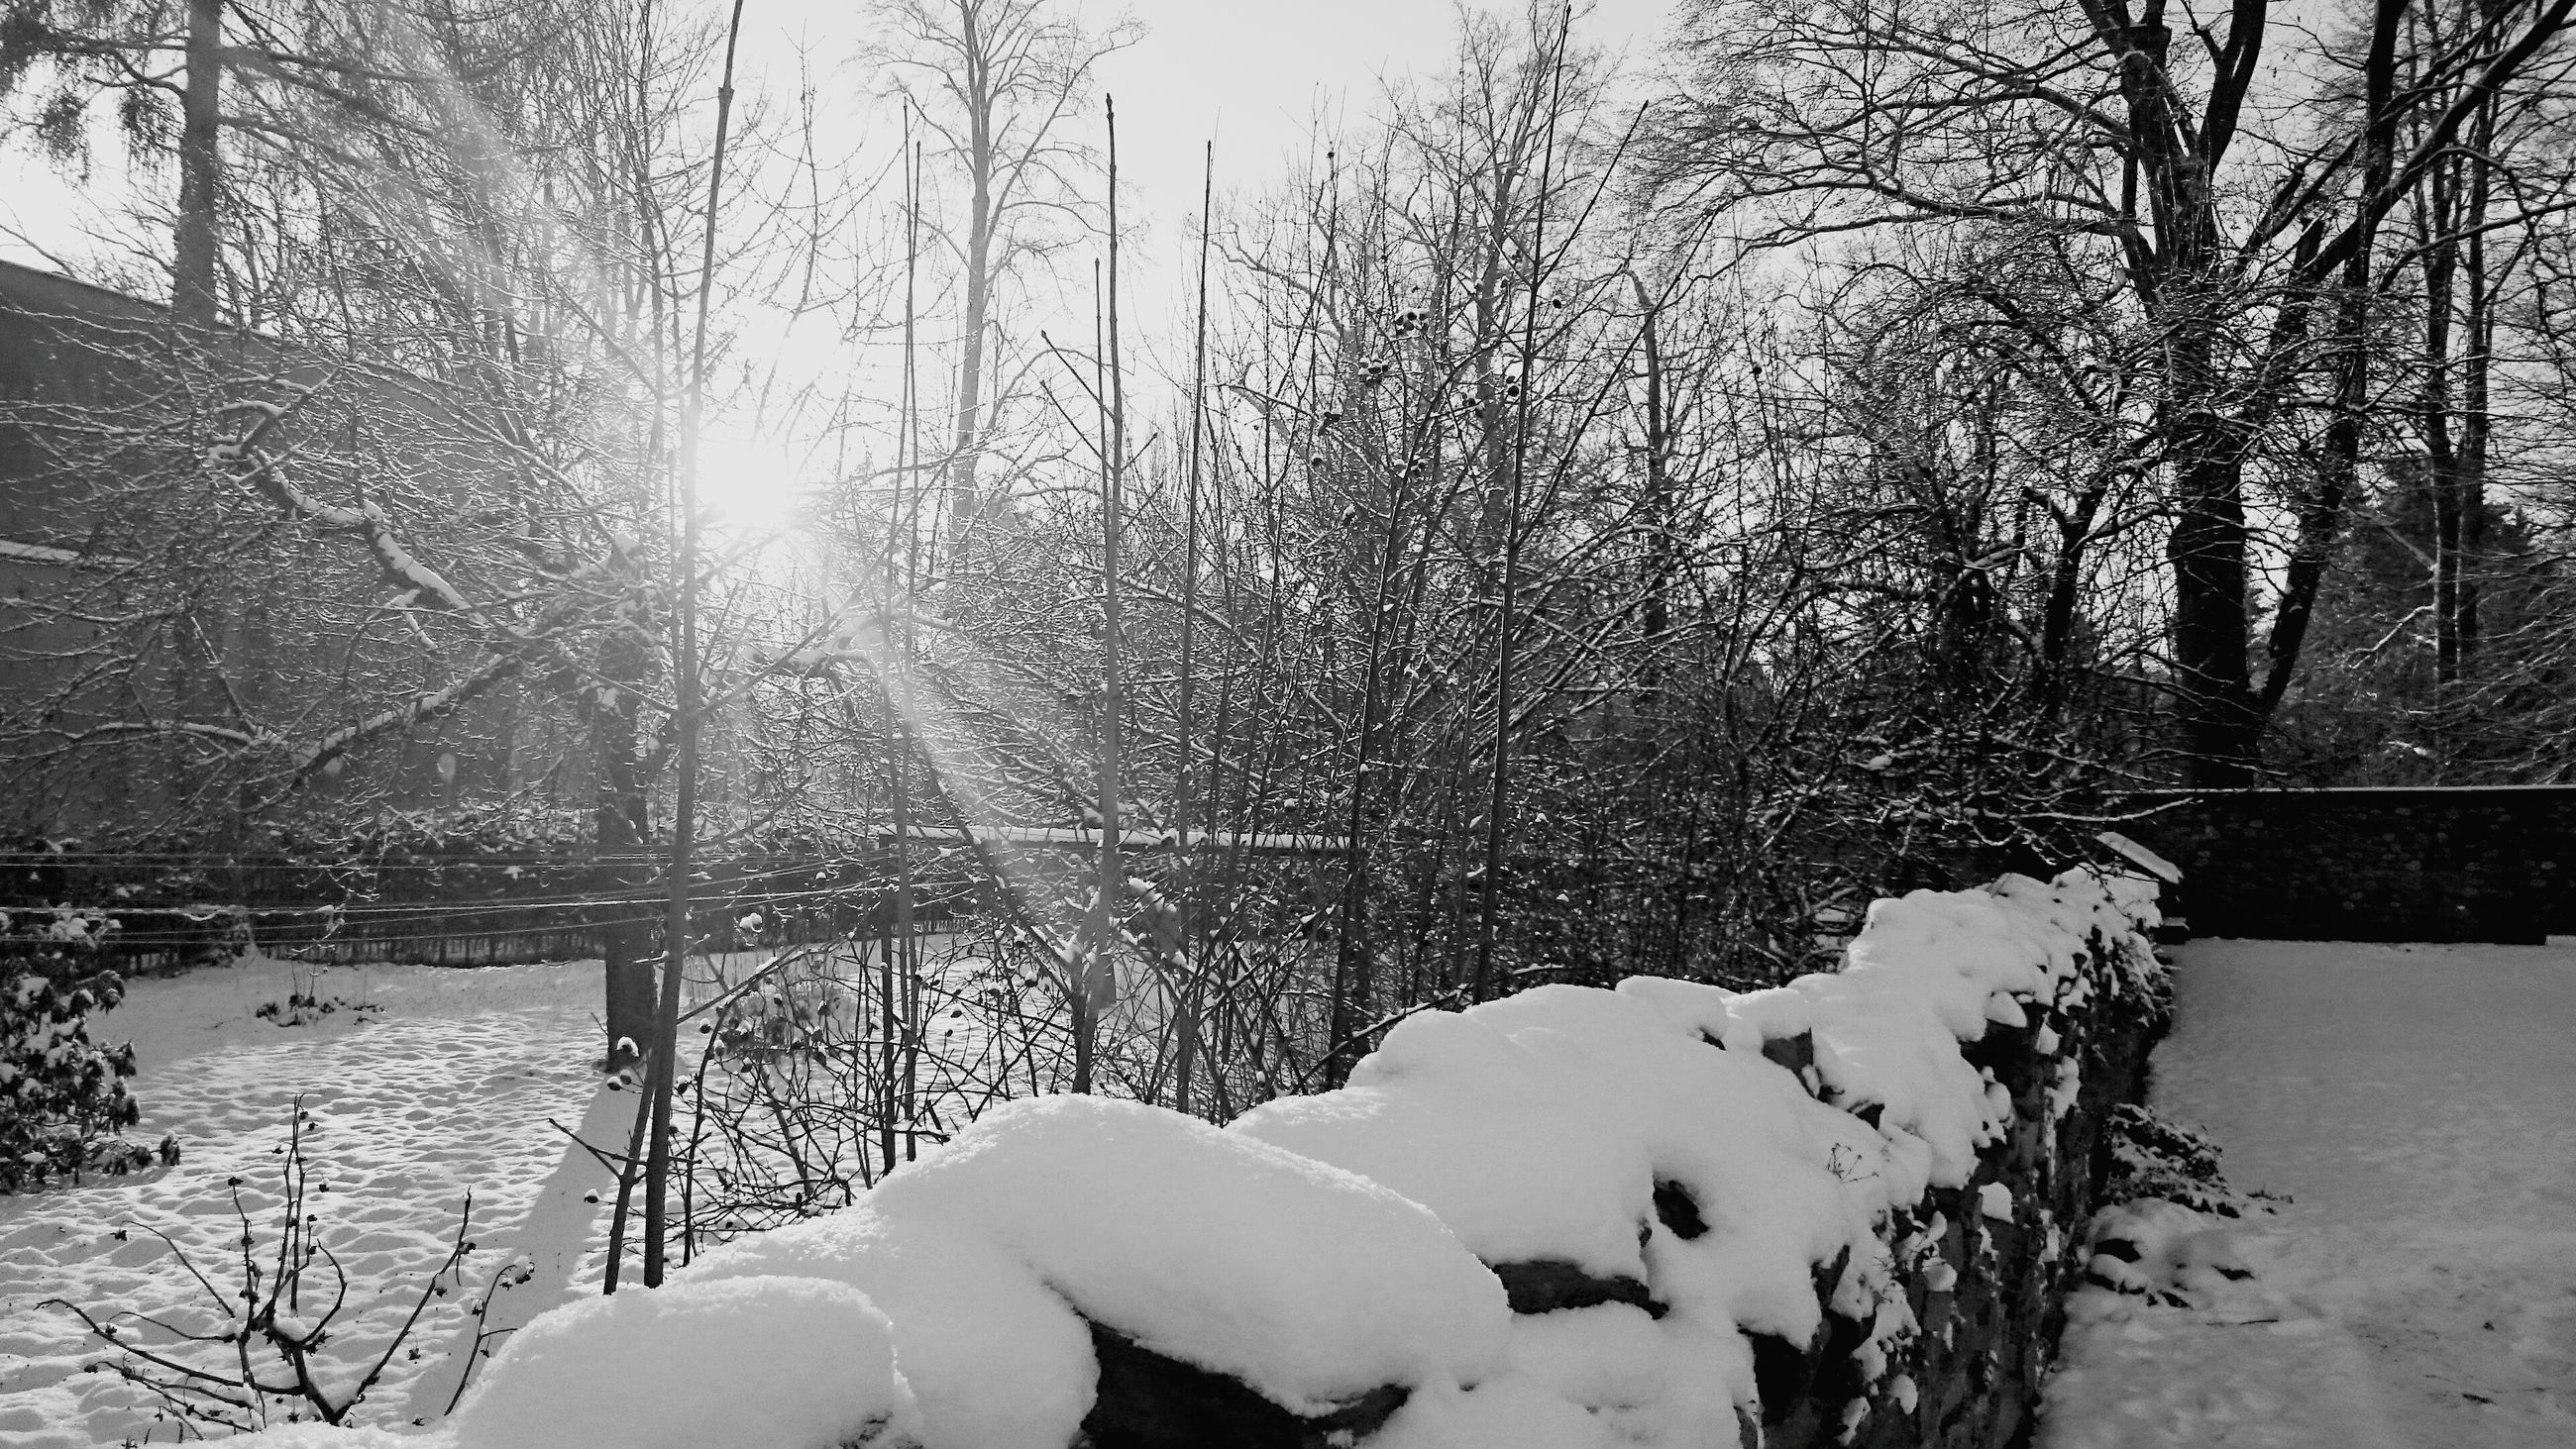 snow, winter, cold temperature, bare tree, season, frozen, tree, nature, tranquility, weather, covering, tranquil scene, branch, sunlight, sky, sun, beauty in nature, wood - material, scenics, fence